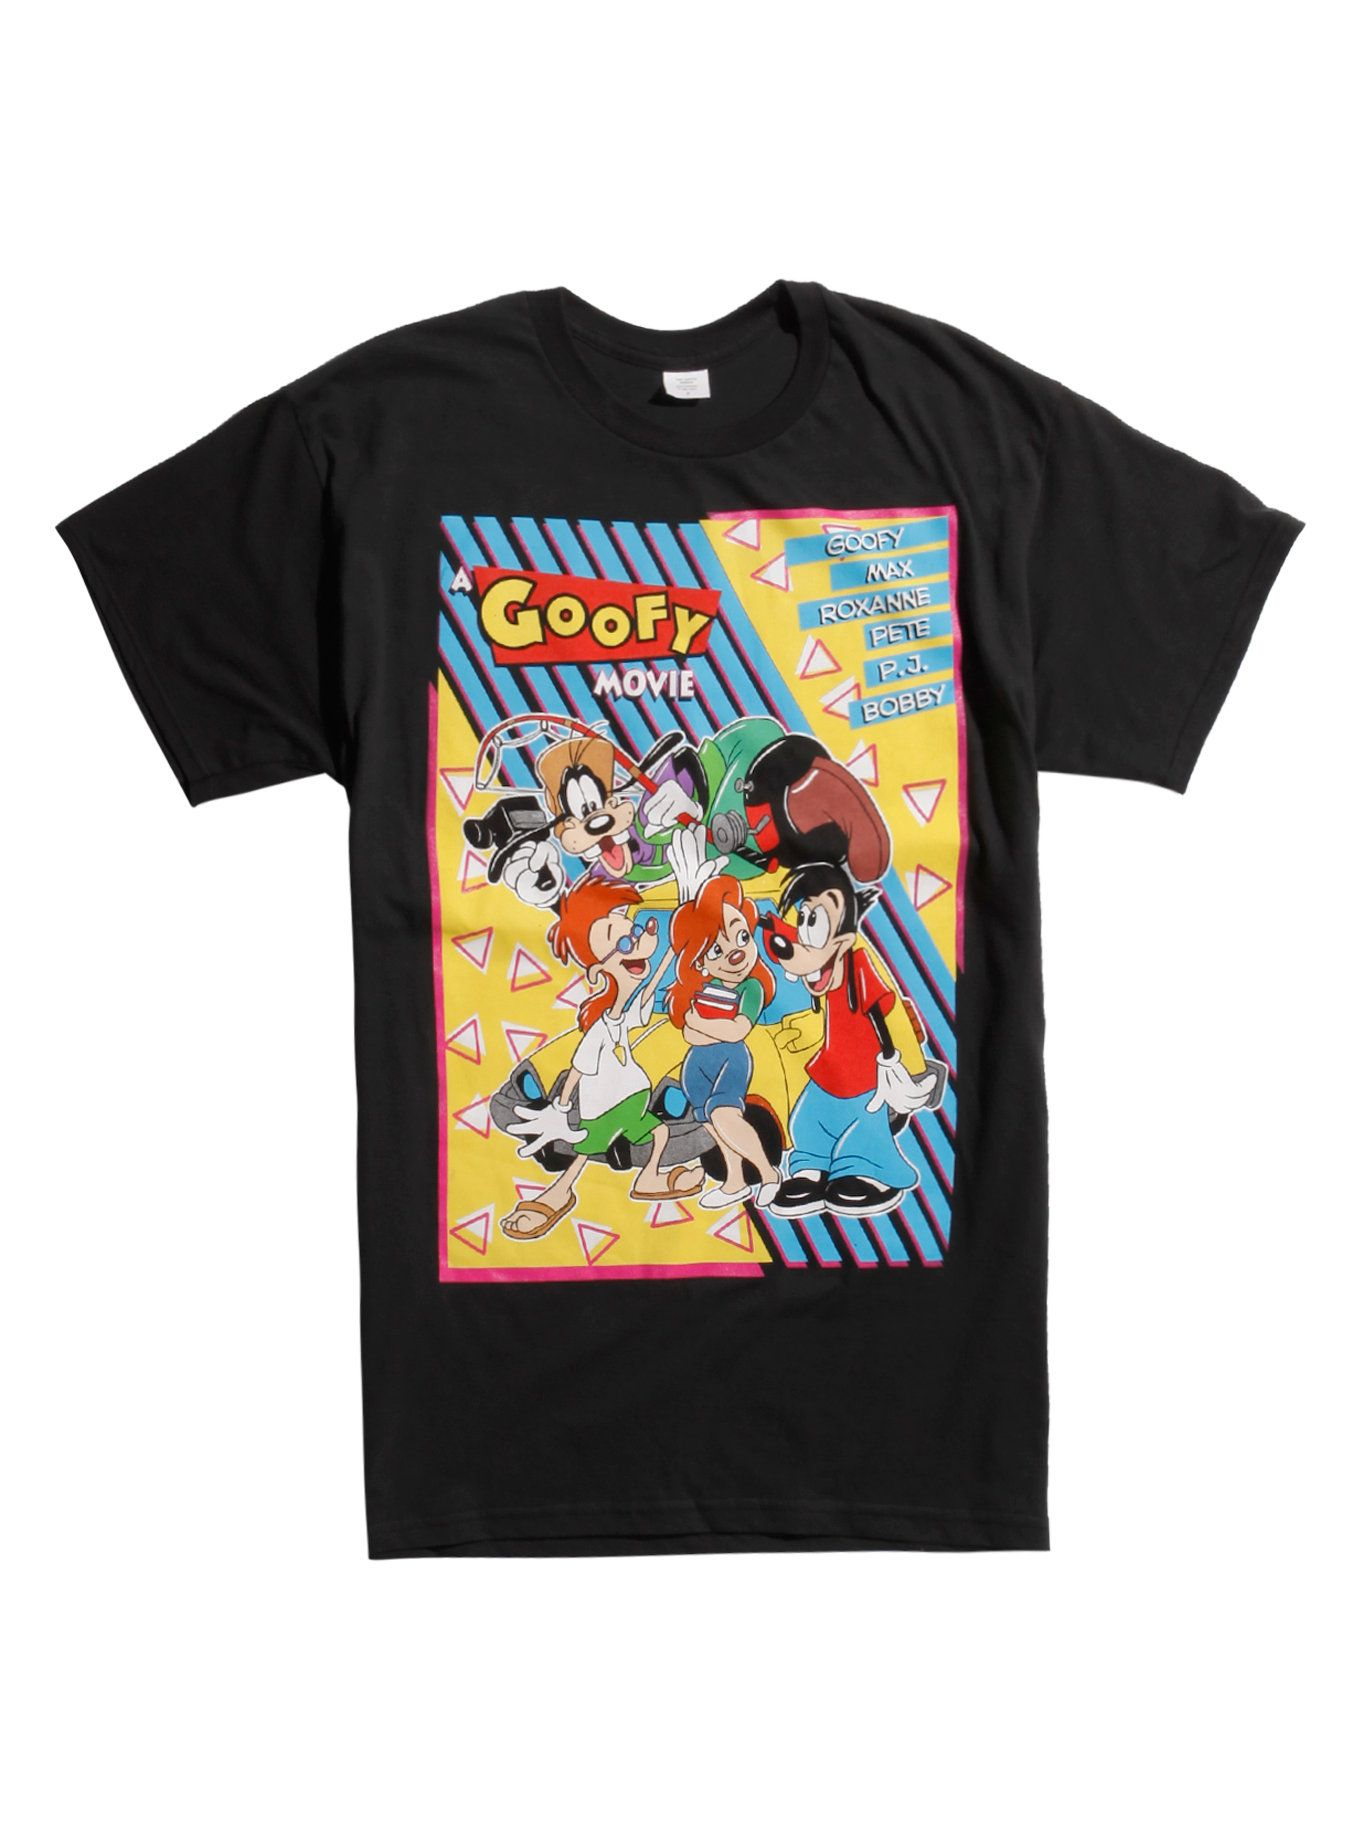 46396a18a Perfect the Perfect Cast and dance to your favorite Powerline jams in this  movie poster T-shirt from <i>A Goofy Movie</i>. See Eye 2 Eye with a  colorful ...